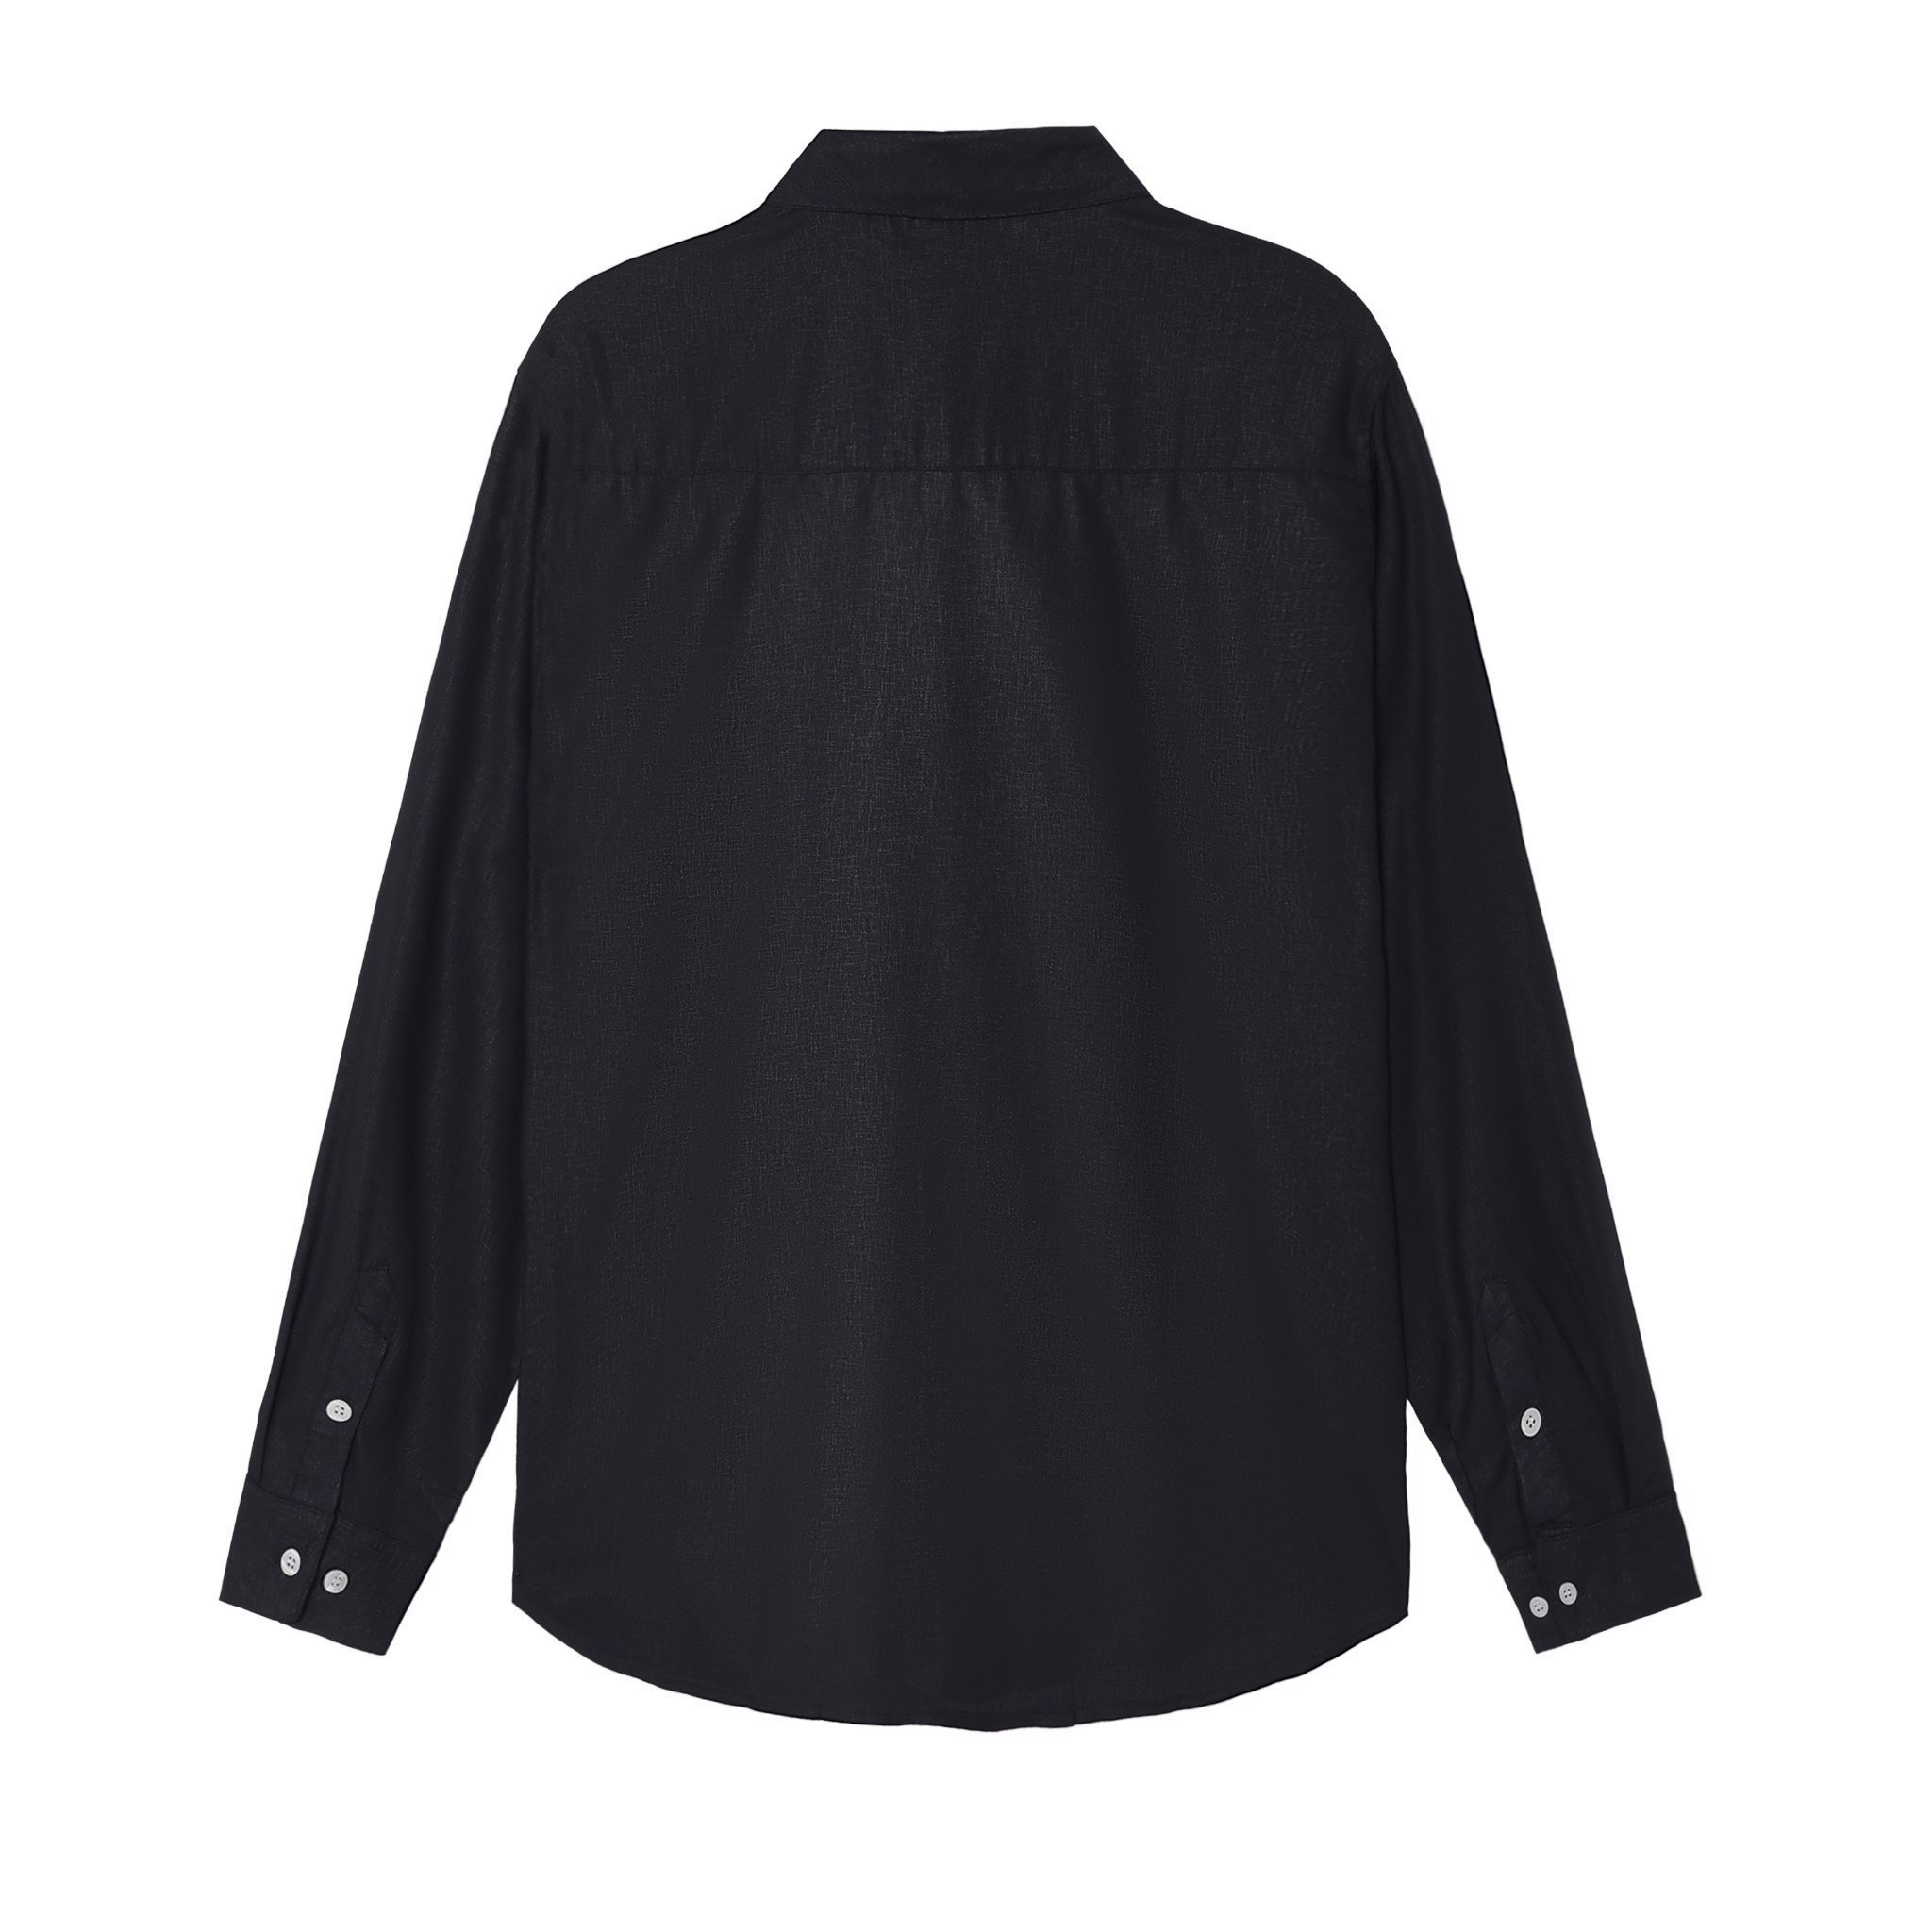 ESSENTIAL SHIRT/Black